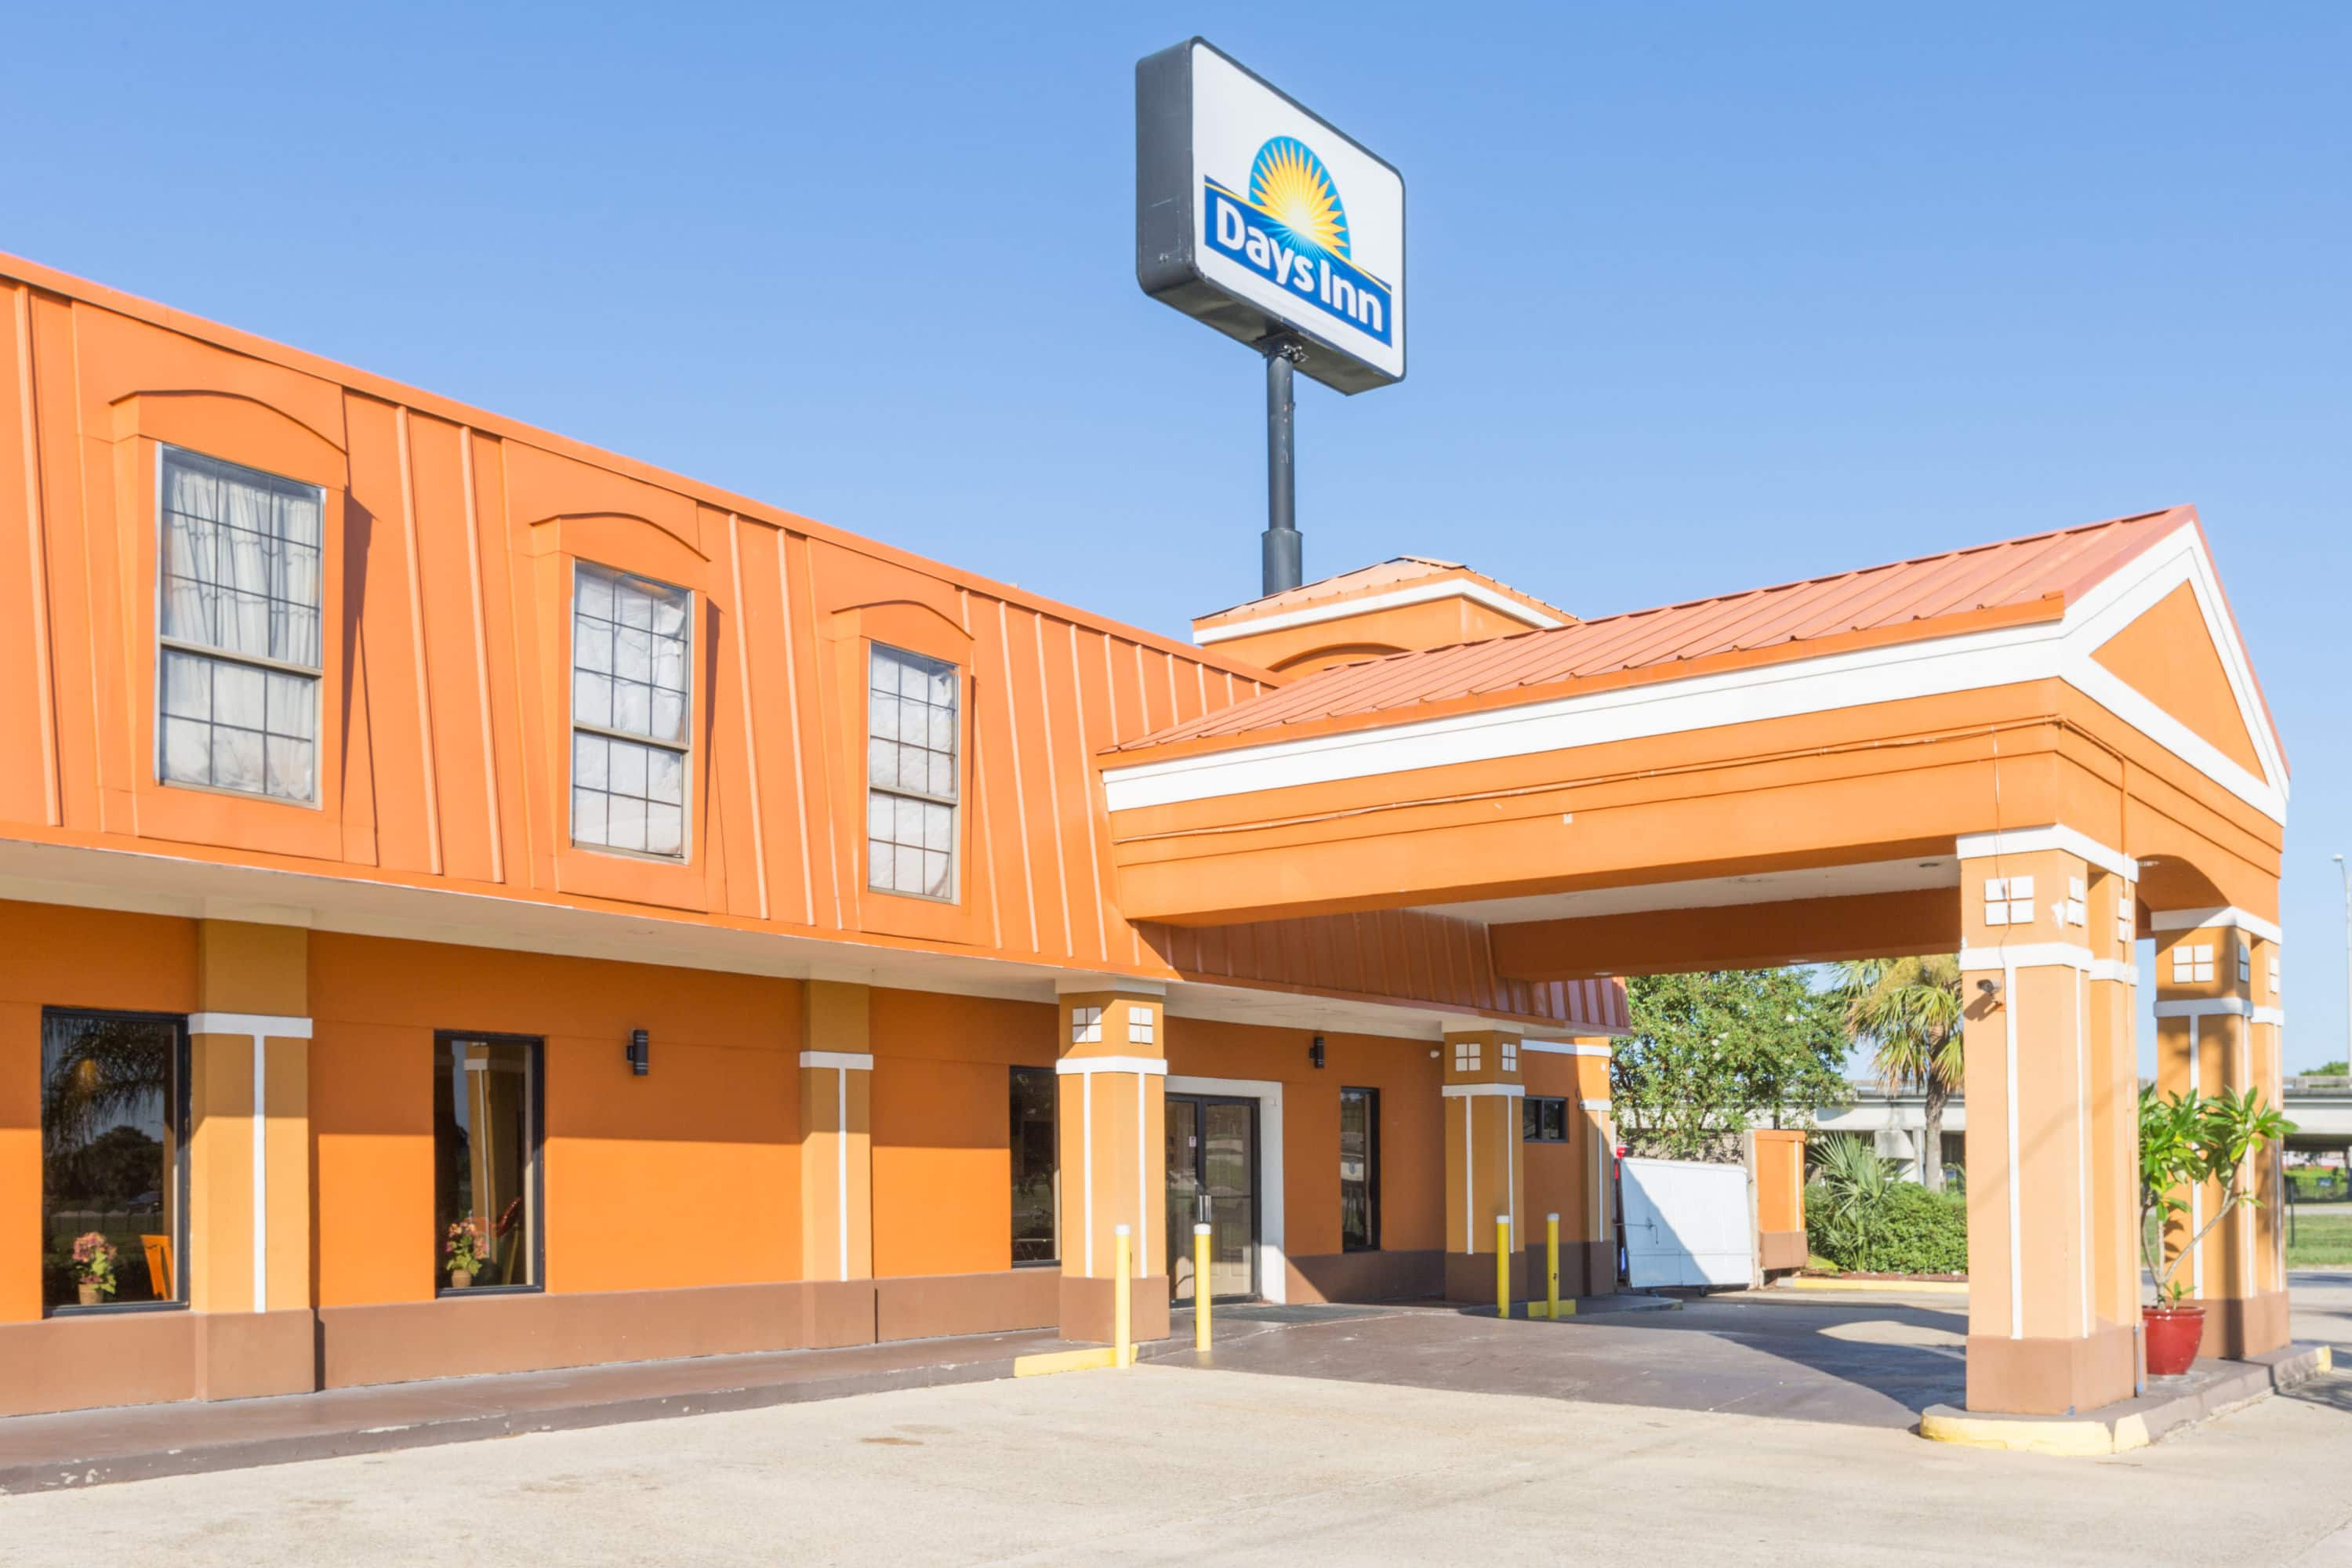 New Orleans Hotels >> Days Inn By Wyndham New Orleans New Orleans La Hotels